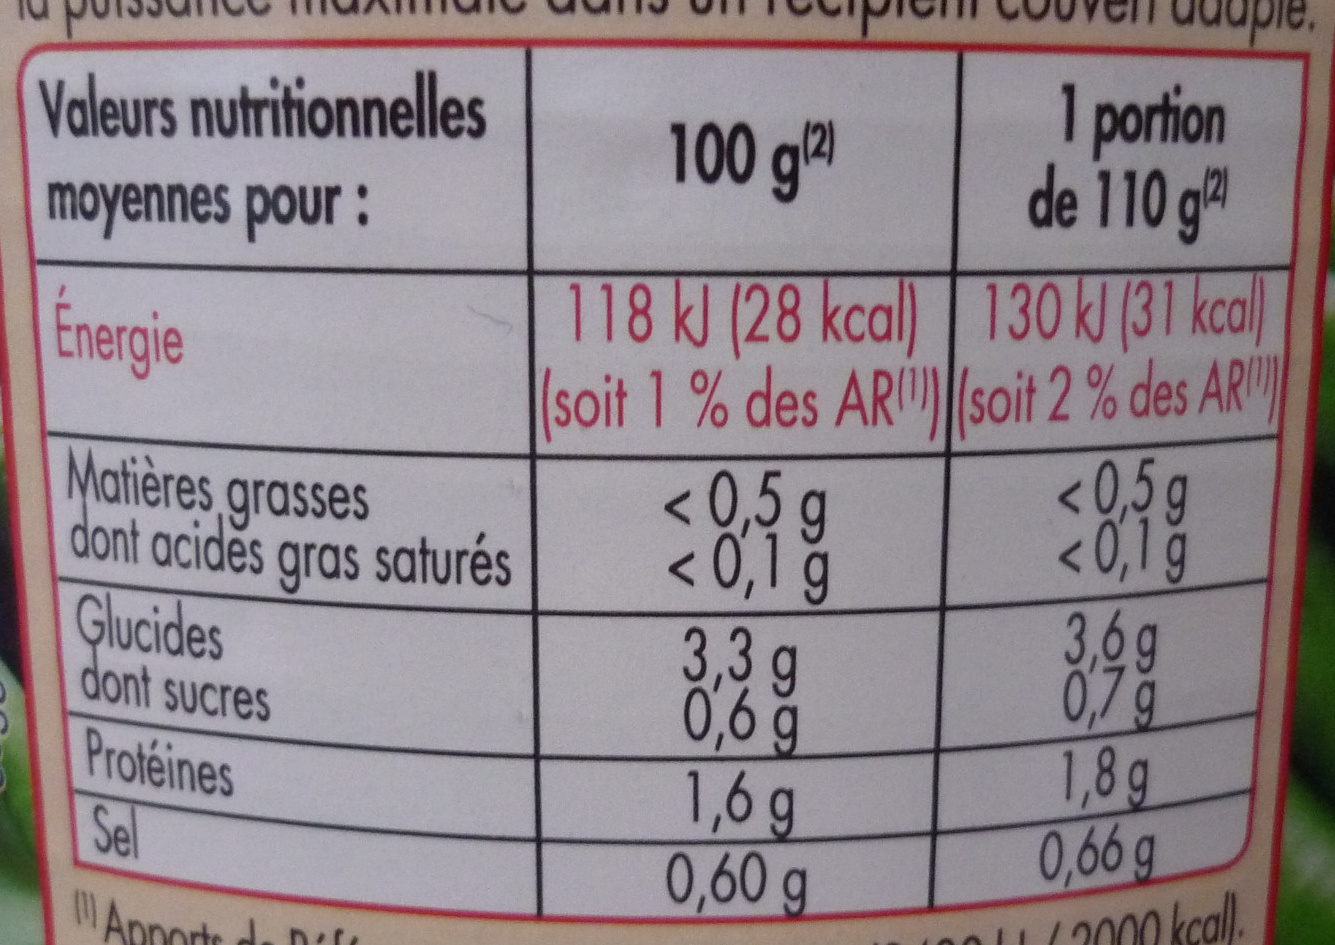 Haricots verts très fins - Nutrition facts